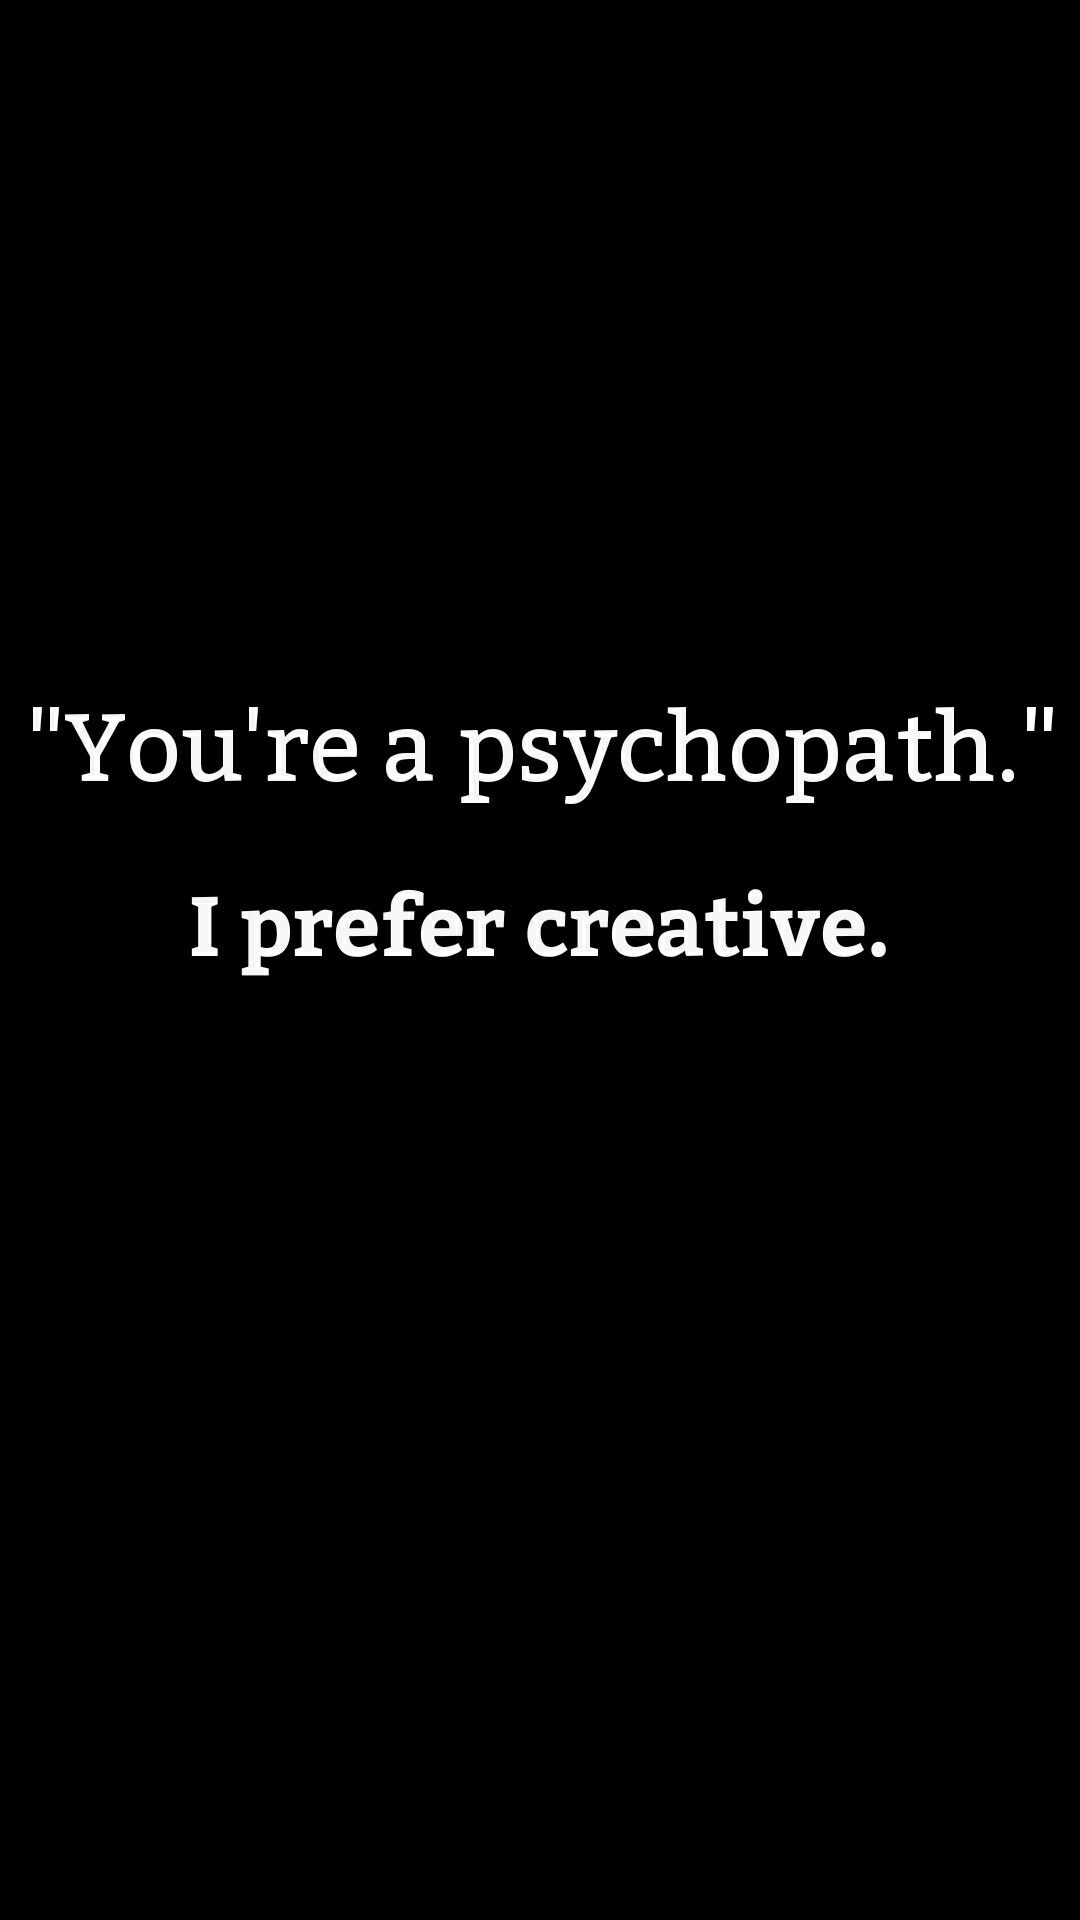 Psychopath Or Creative? Which One Are You?